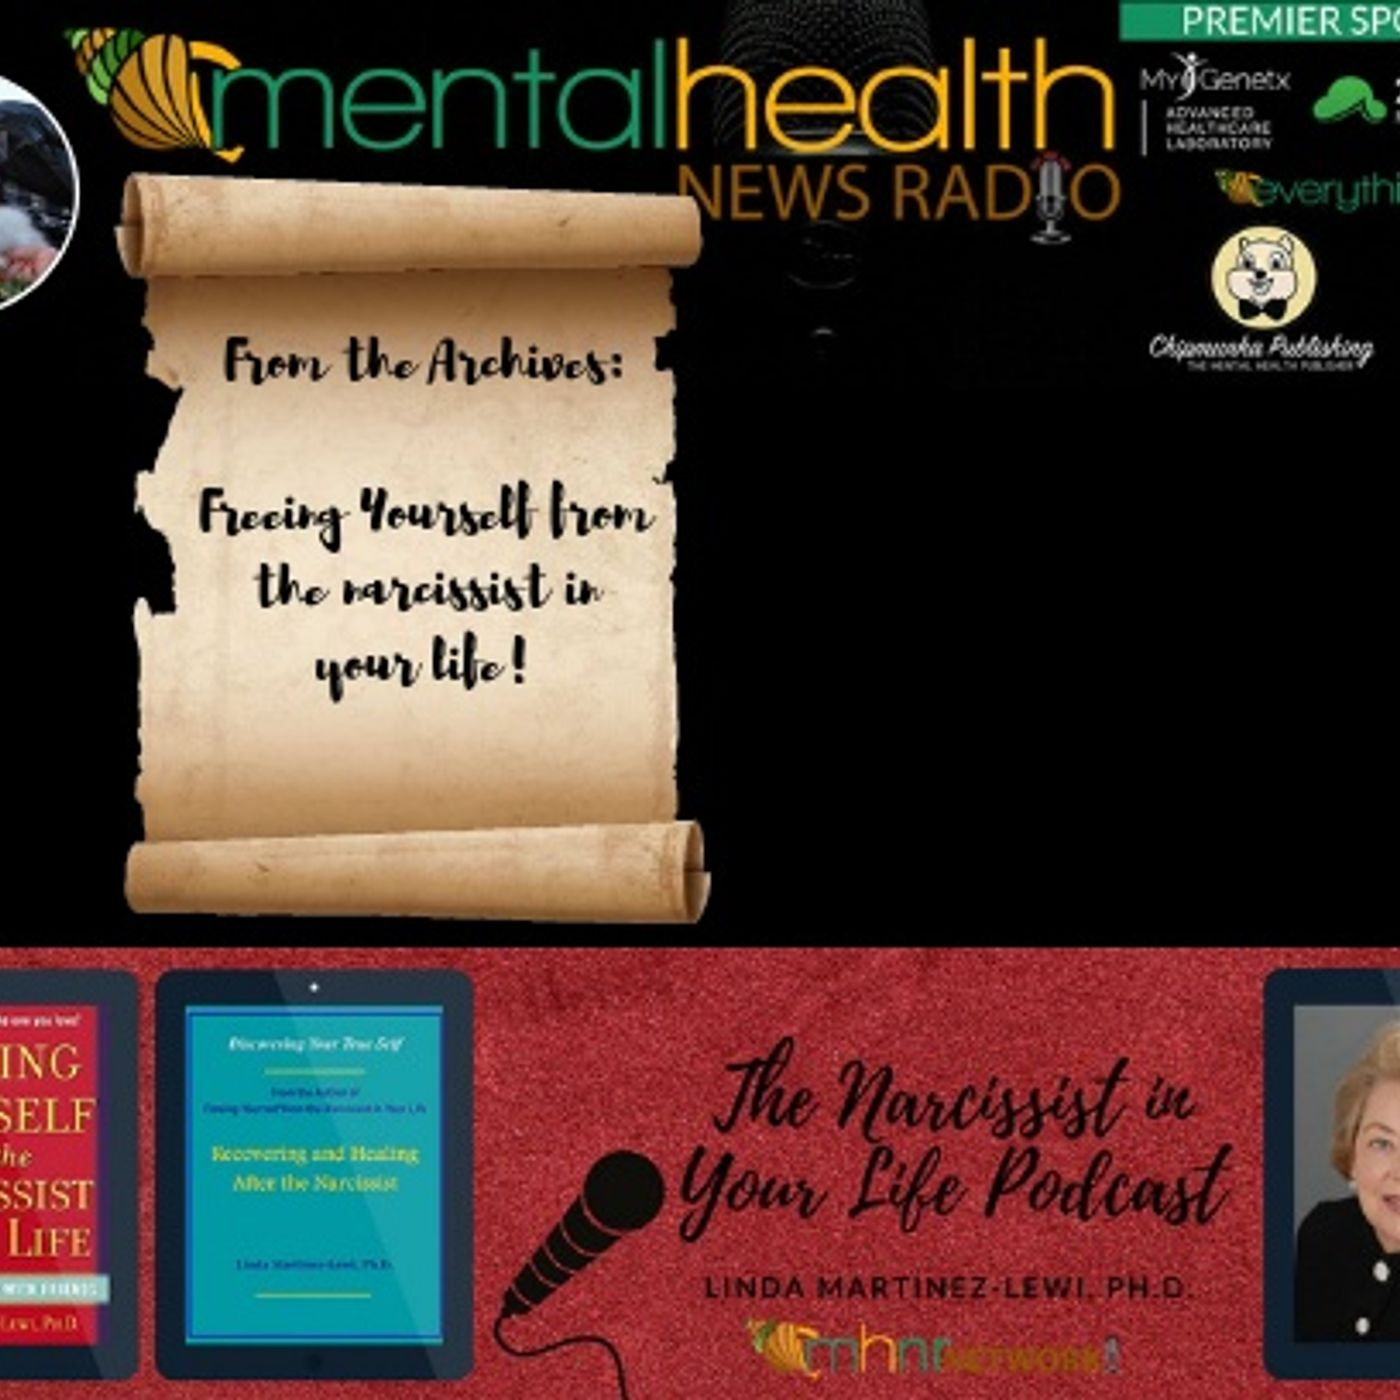 Mental Health News Radio - From the Archives: Freeing Yourself from the Narcissist in Your Life